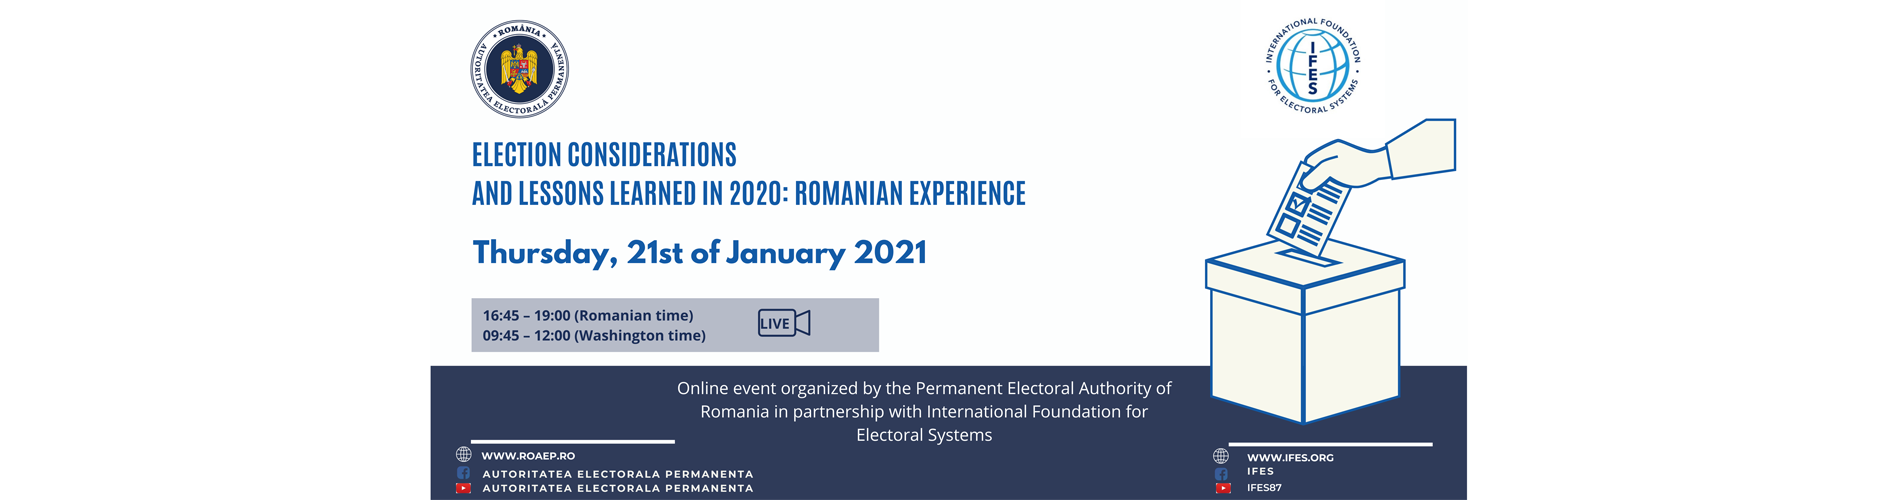 Election Considerations and Lessons Learned in 2020: Romanian Experience